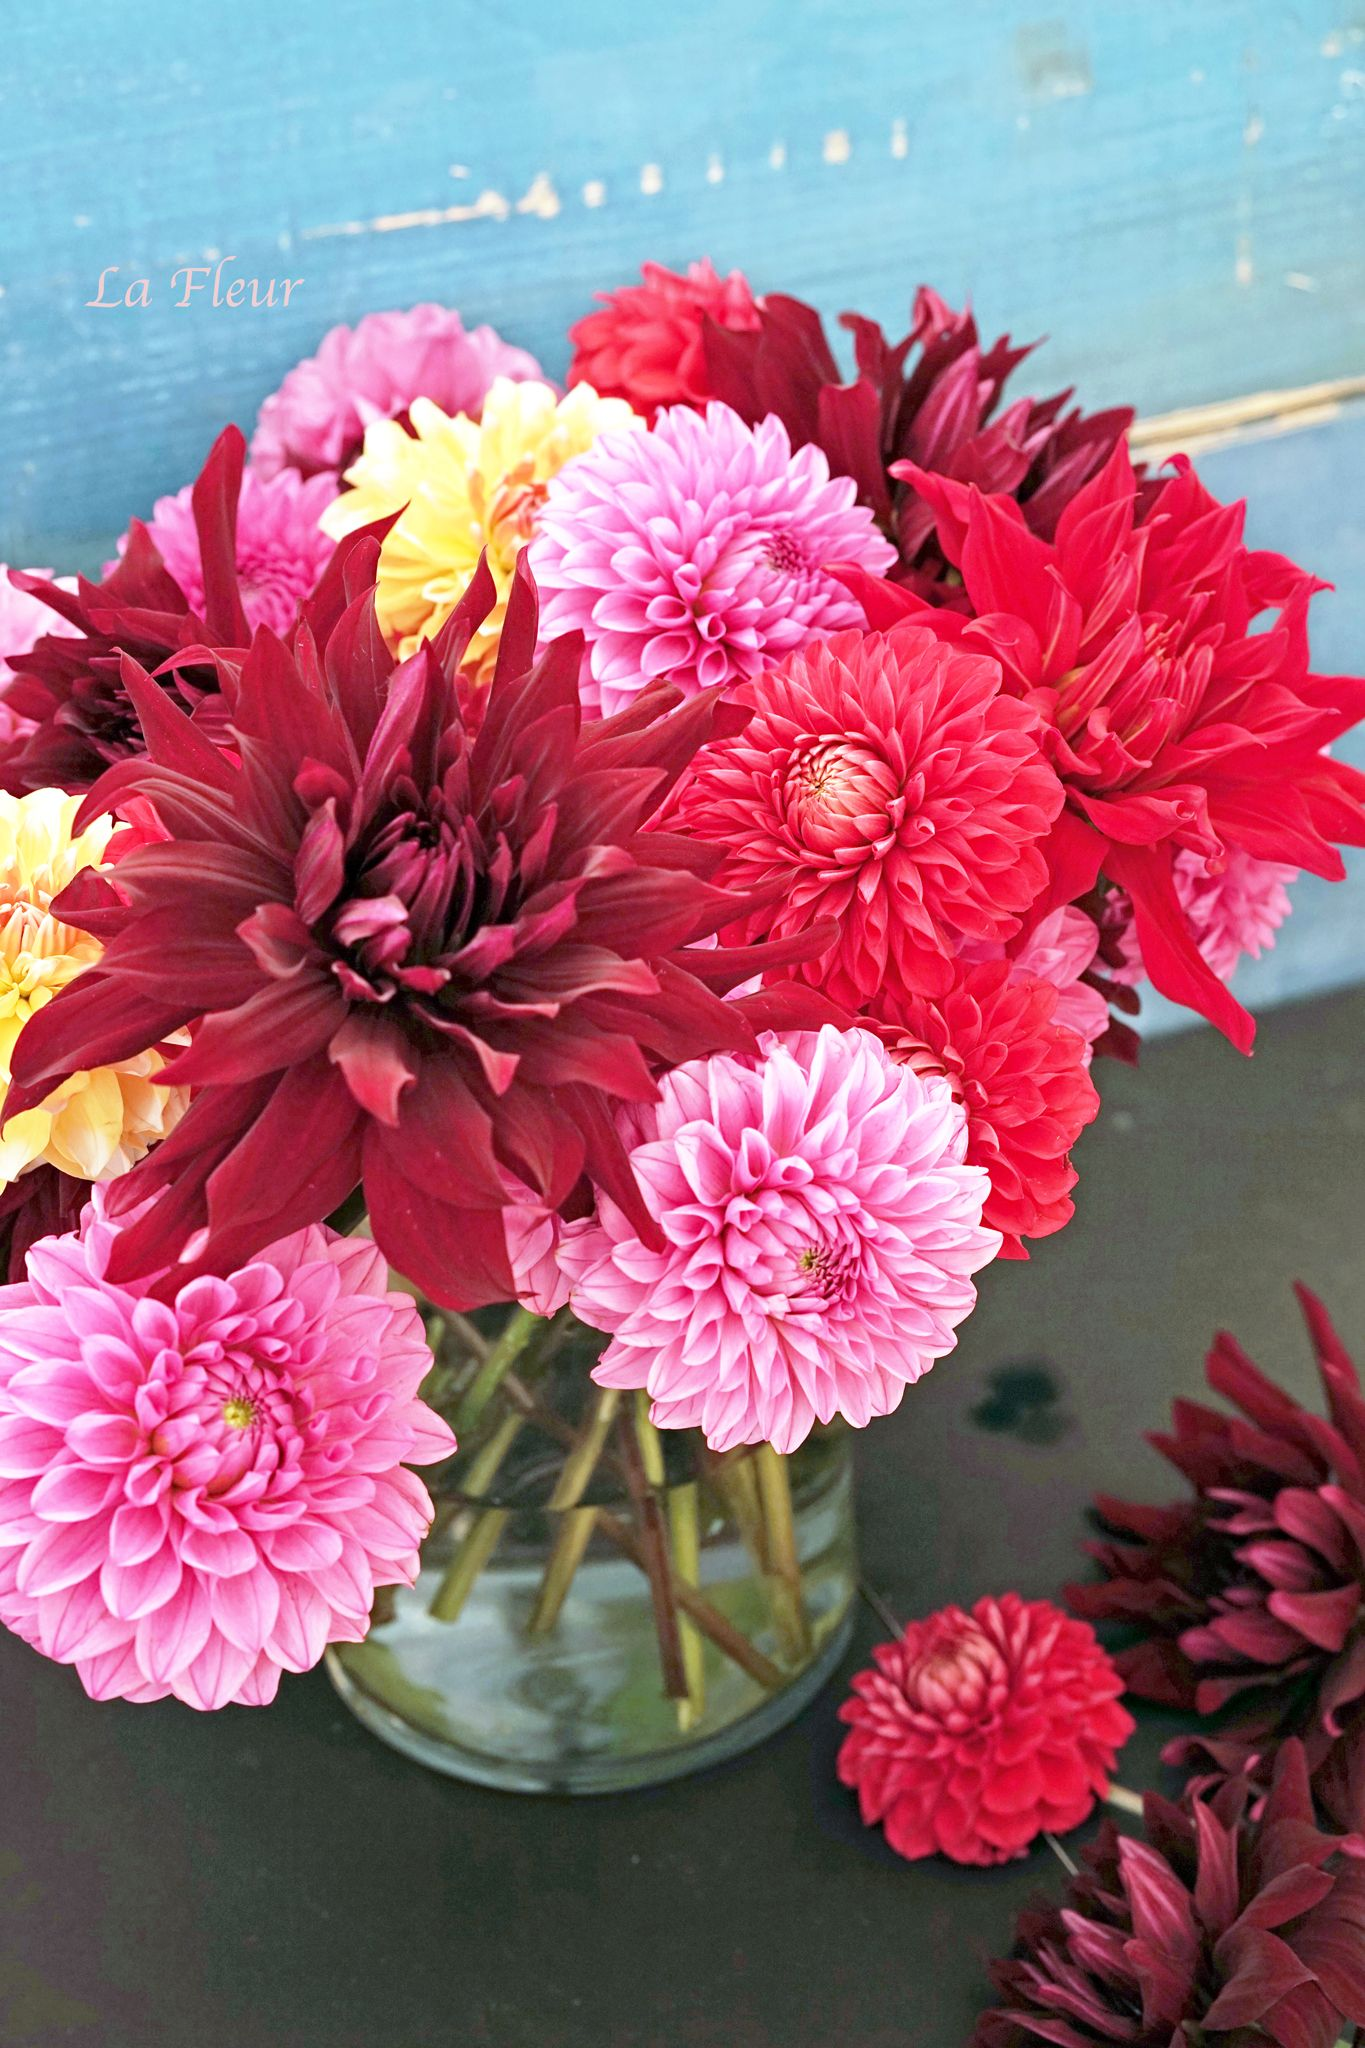 Dahlia flower pinterest dahlia and flower arrangements flower arrangements dahlia izmirmasajfo